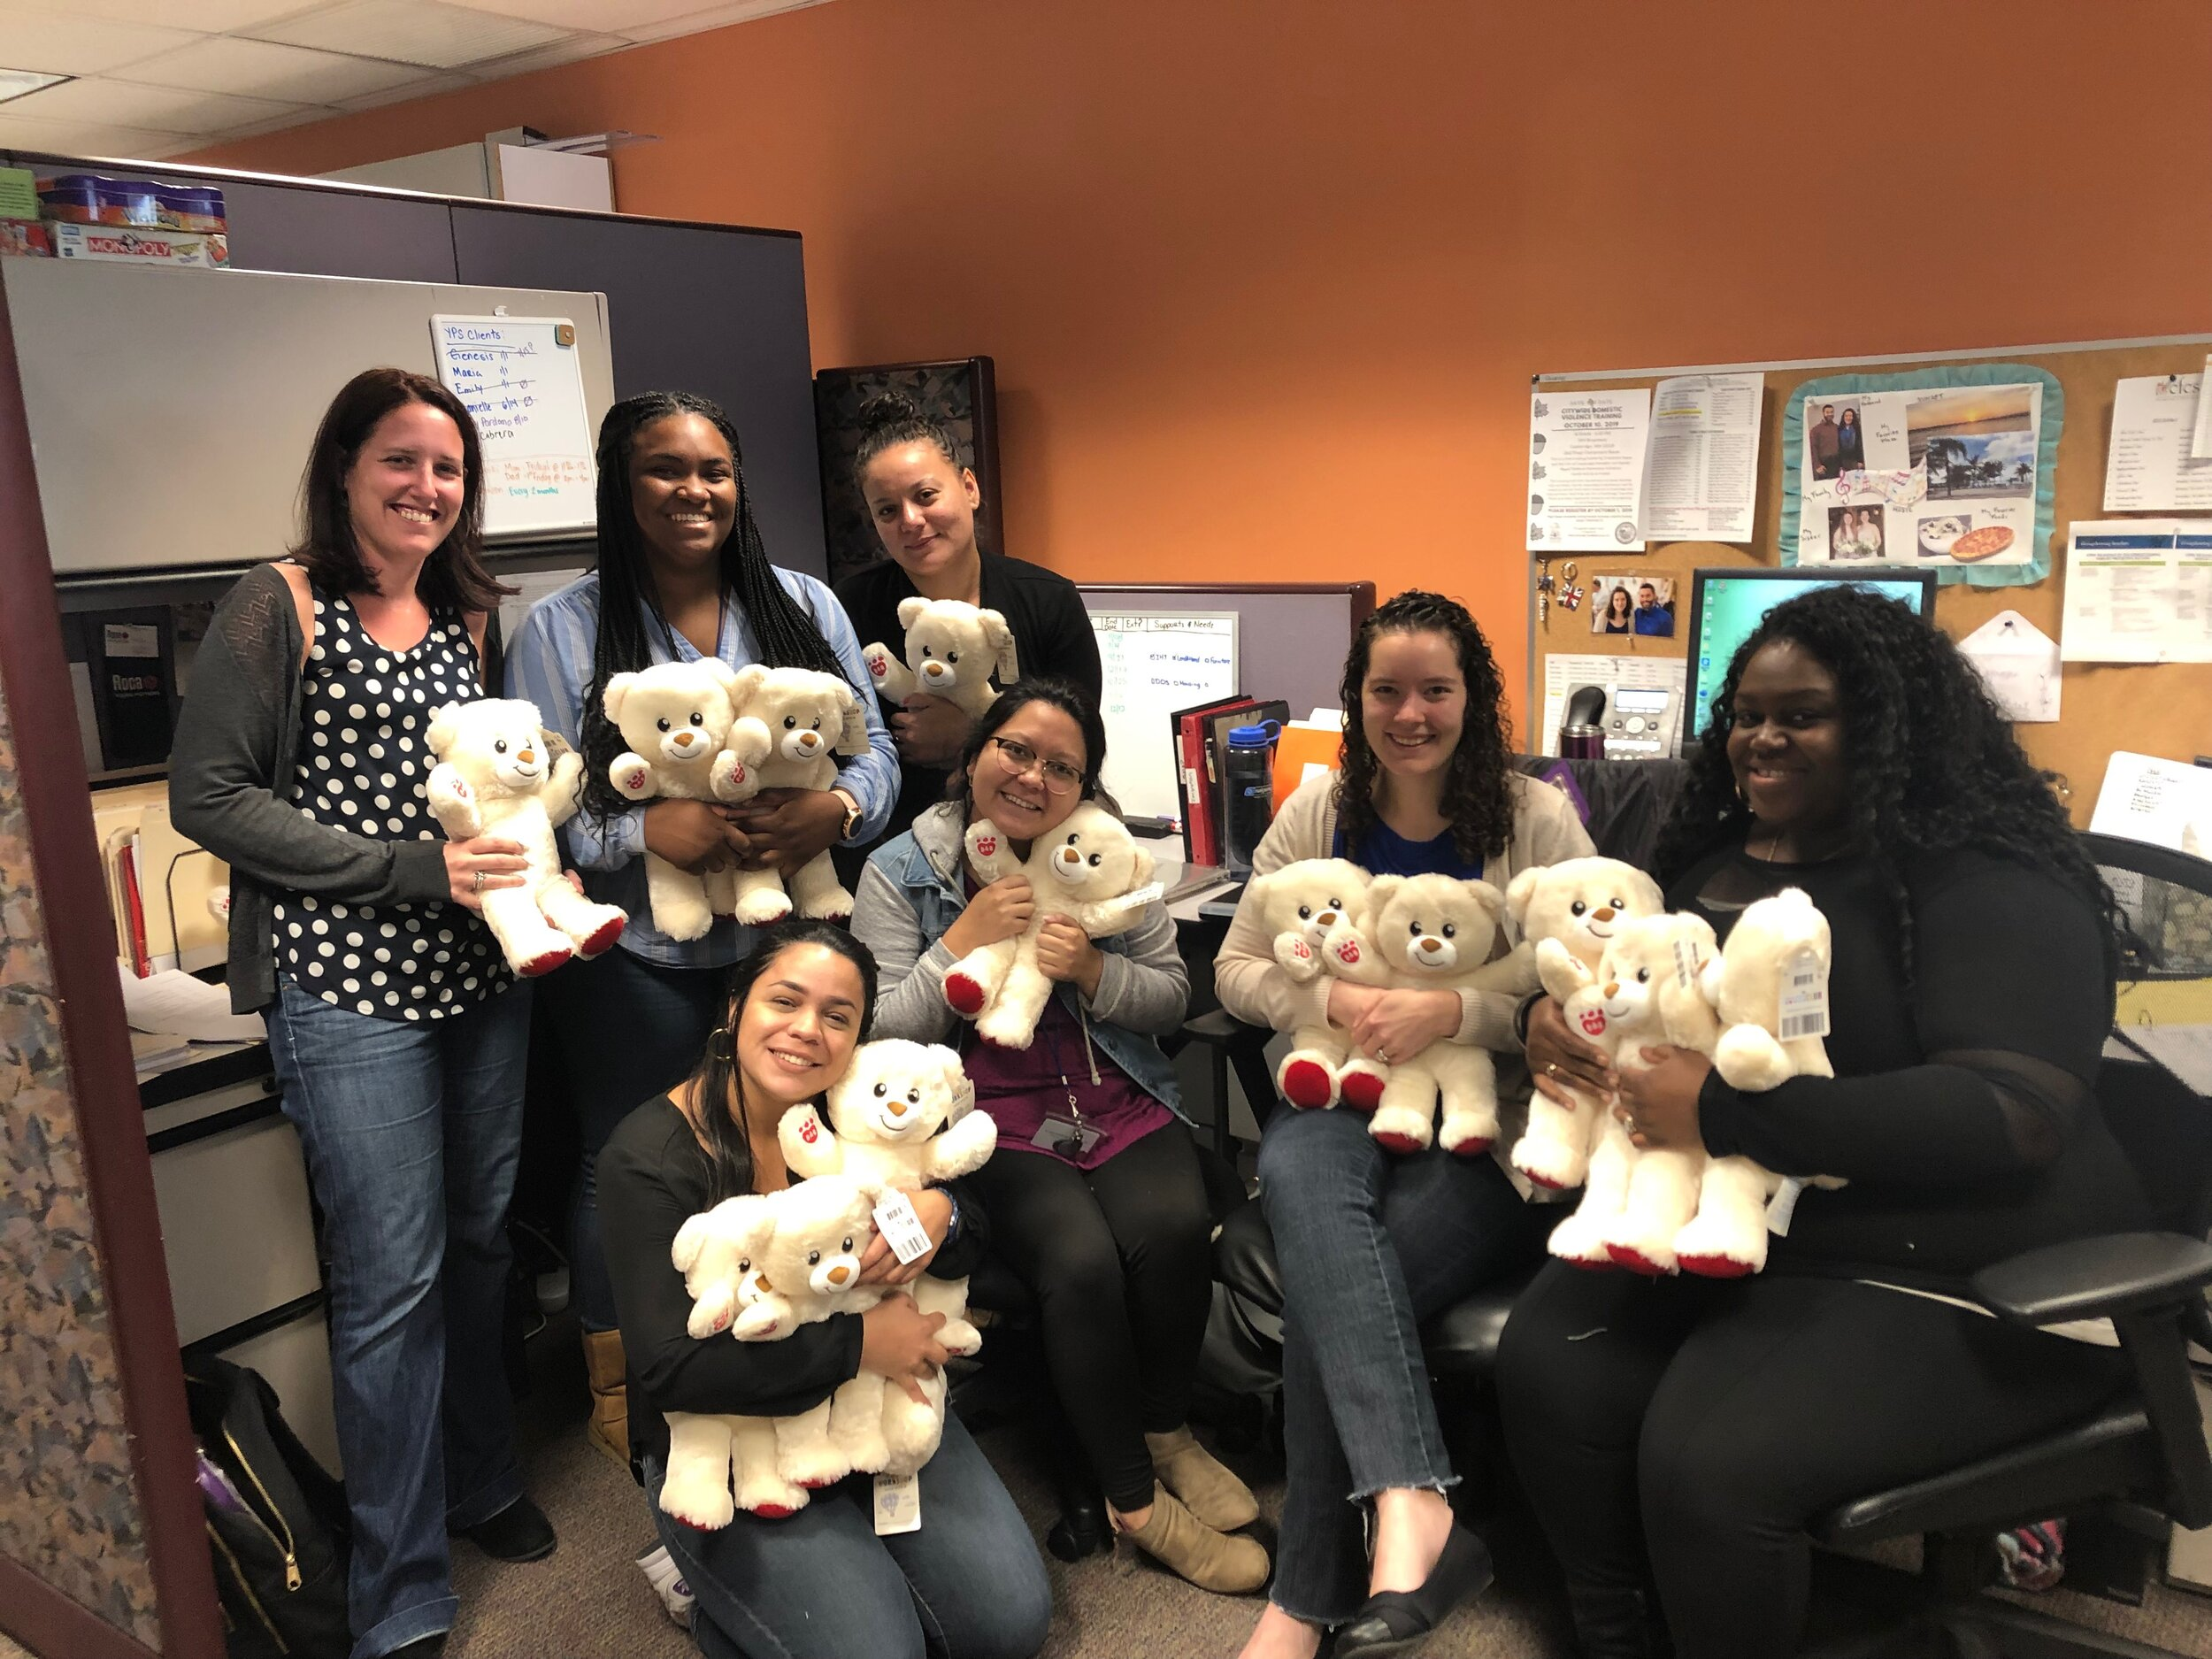 The Family Support & Stabilization team, with bears that will soon go to good homes.